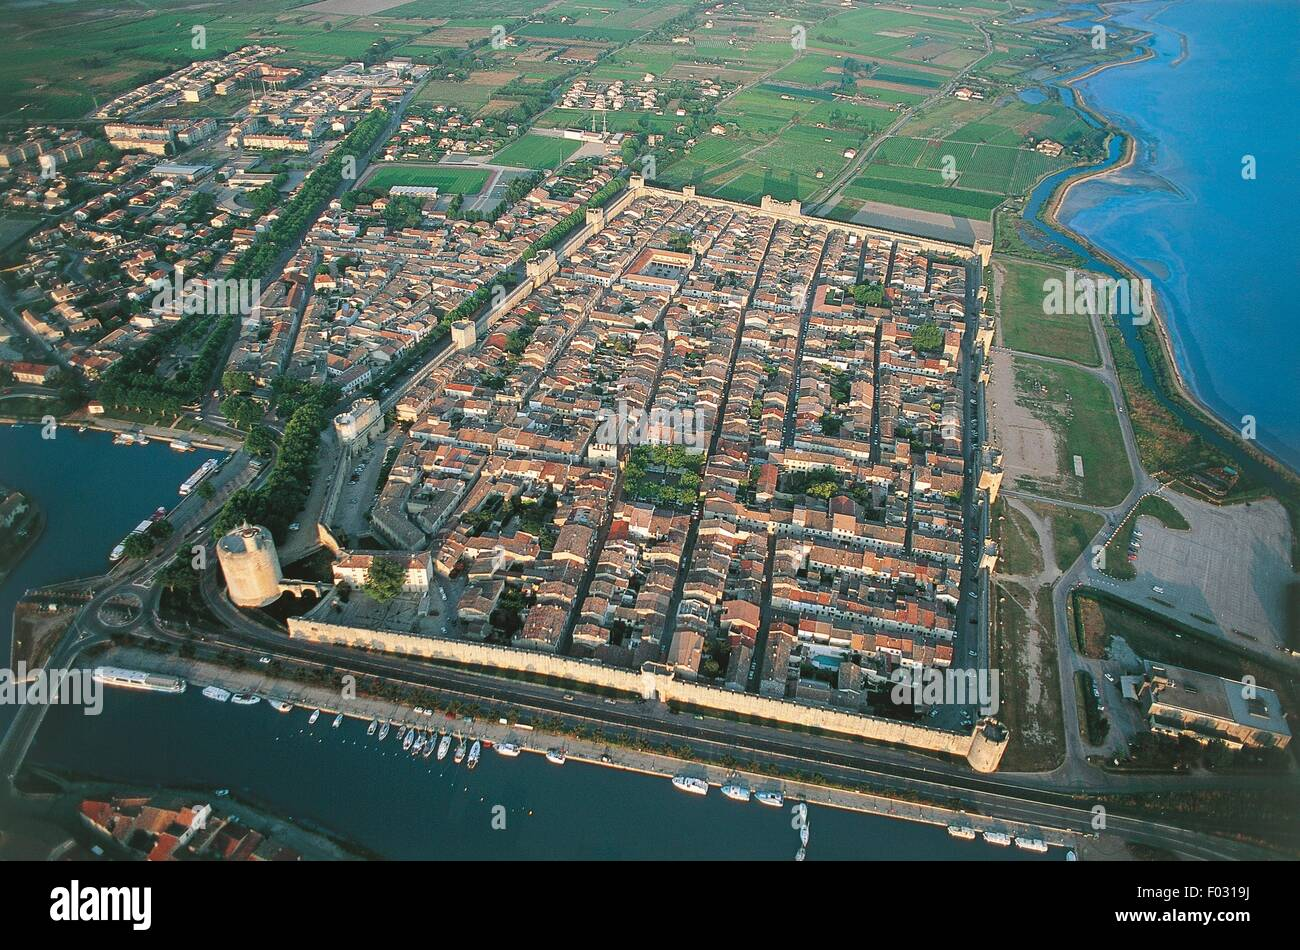 Aerial view of Aigues-Mortes - Languedoc-Roussillon, France - Stock Image